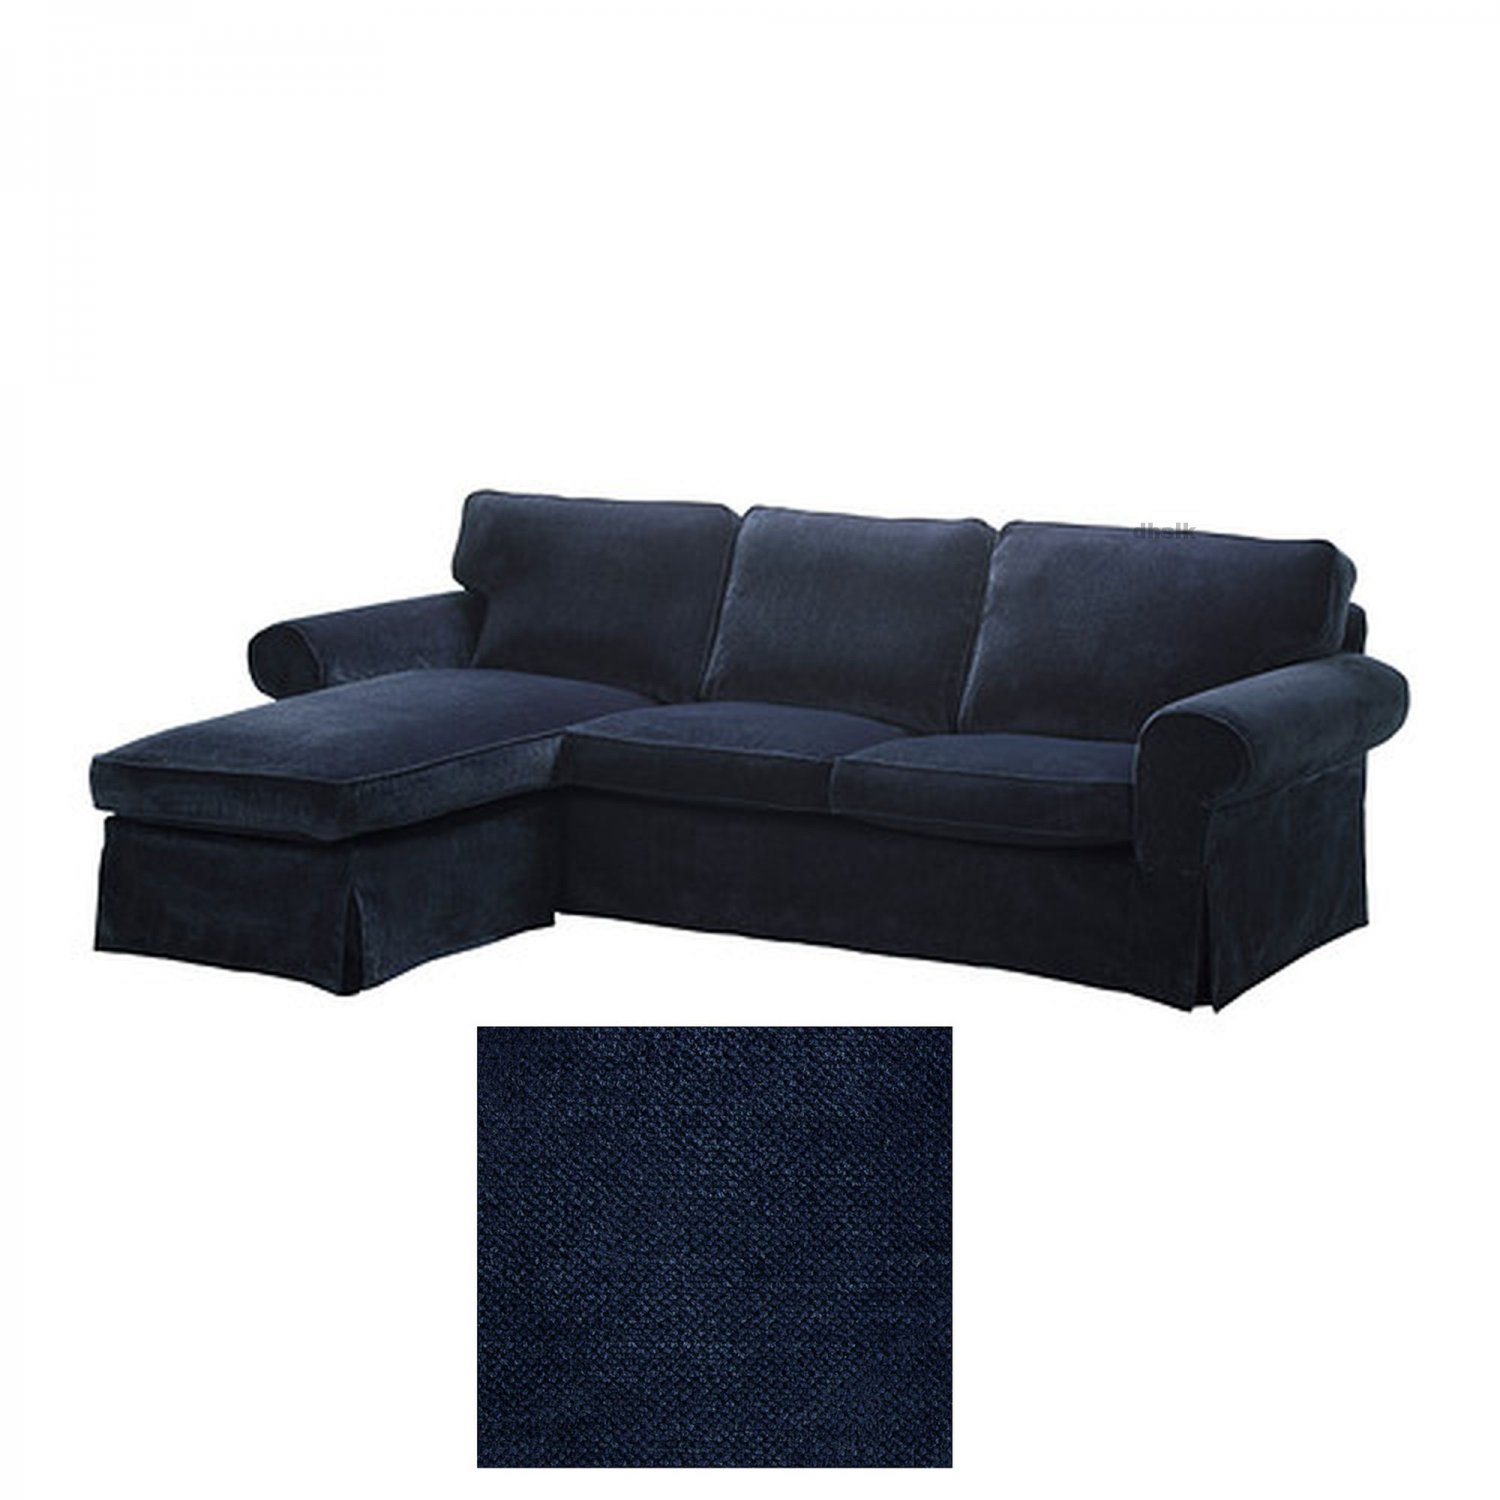 Ikea ektorp 2 seat loveseat sofa with chaise cover slipcover vellinge dark blue Loveseat chaise sectional